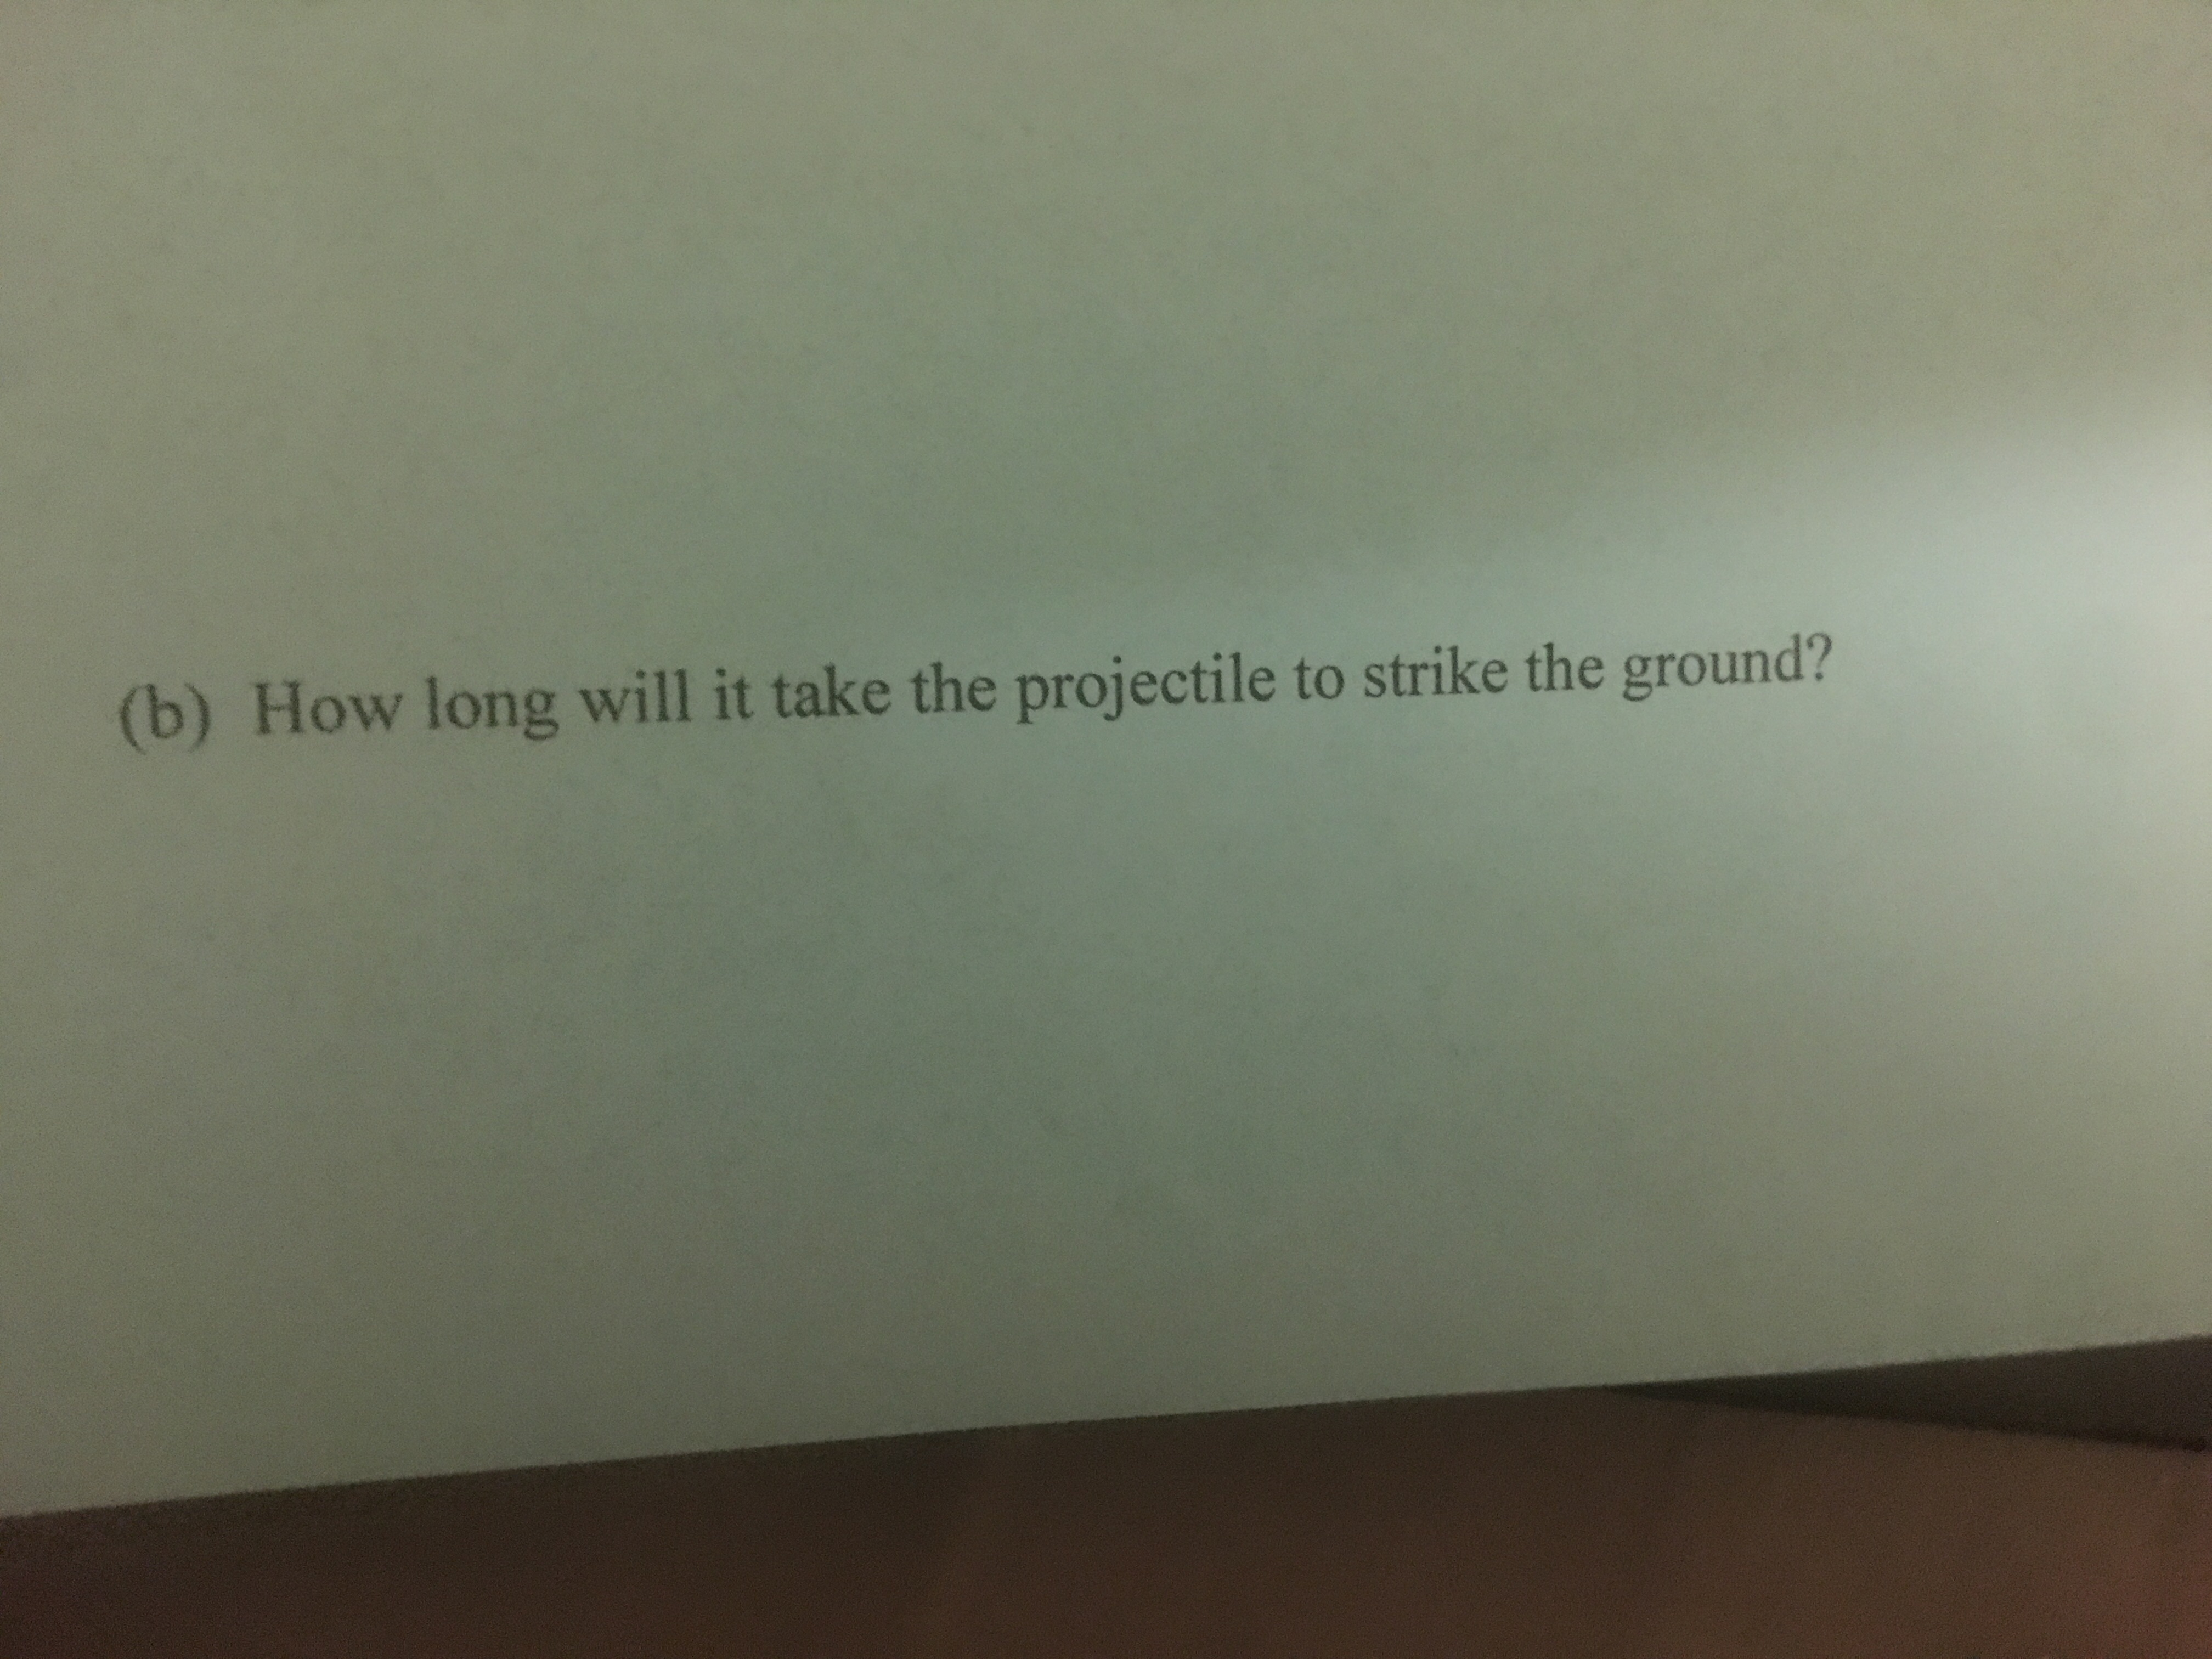 (b) How long will it take the projectile to strike the ground?